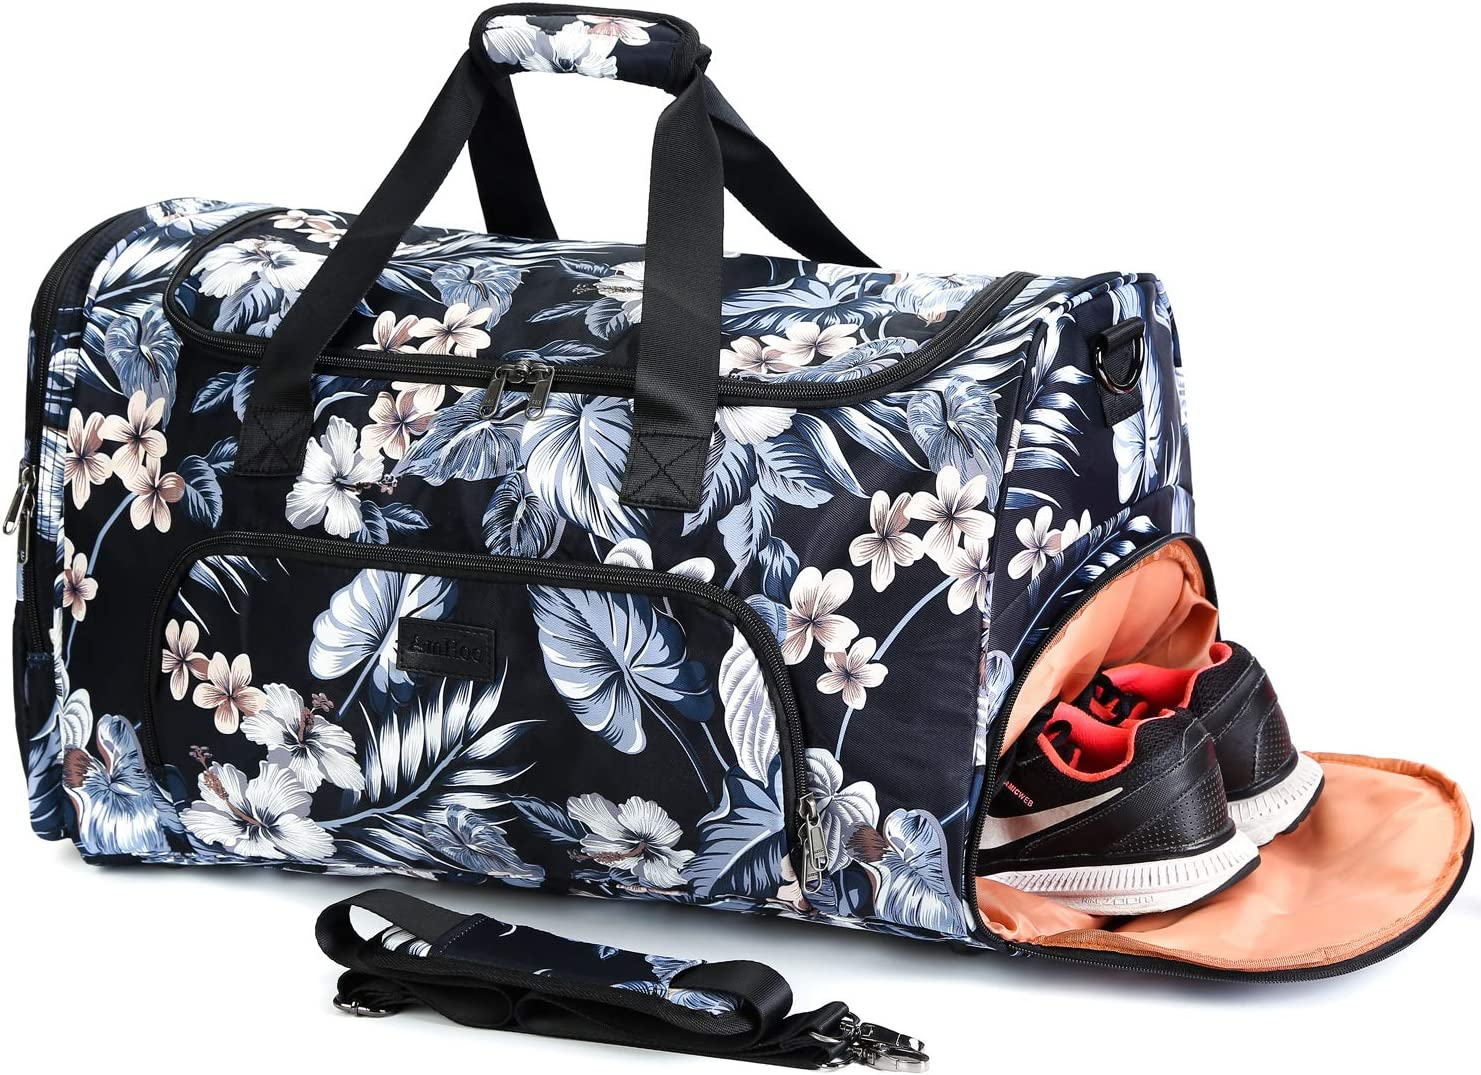 AmHoo Travel Duffle Bag have Exquisite Space Design for Weekend Overnight Carry on Bag with Shoes Compartment for Unisex Floral Black